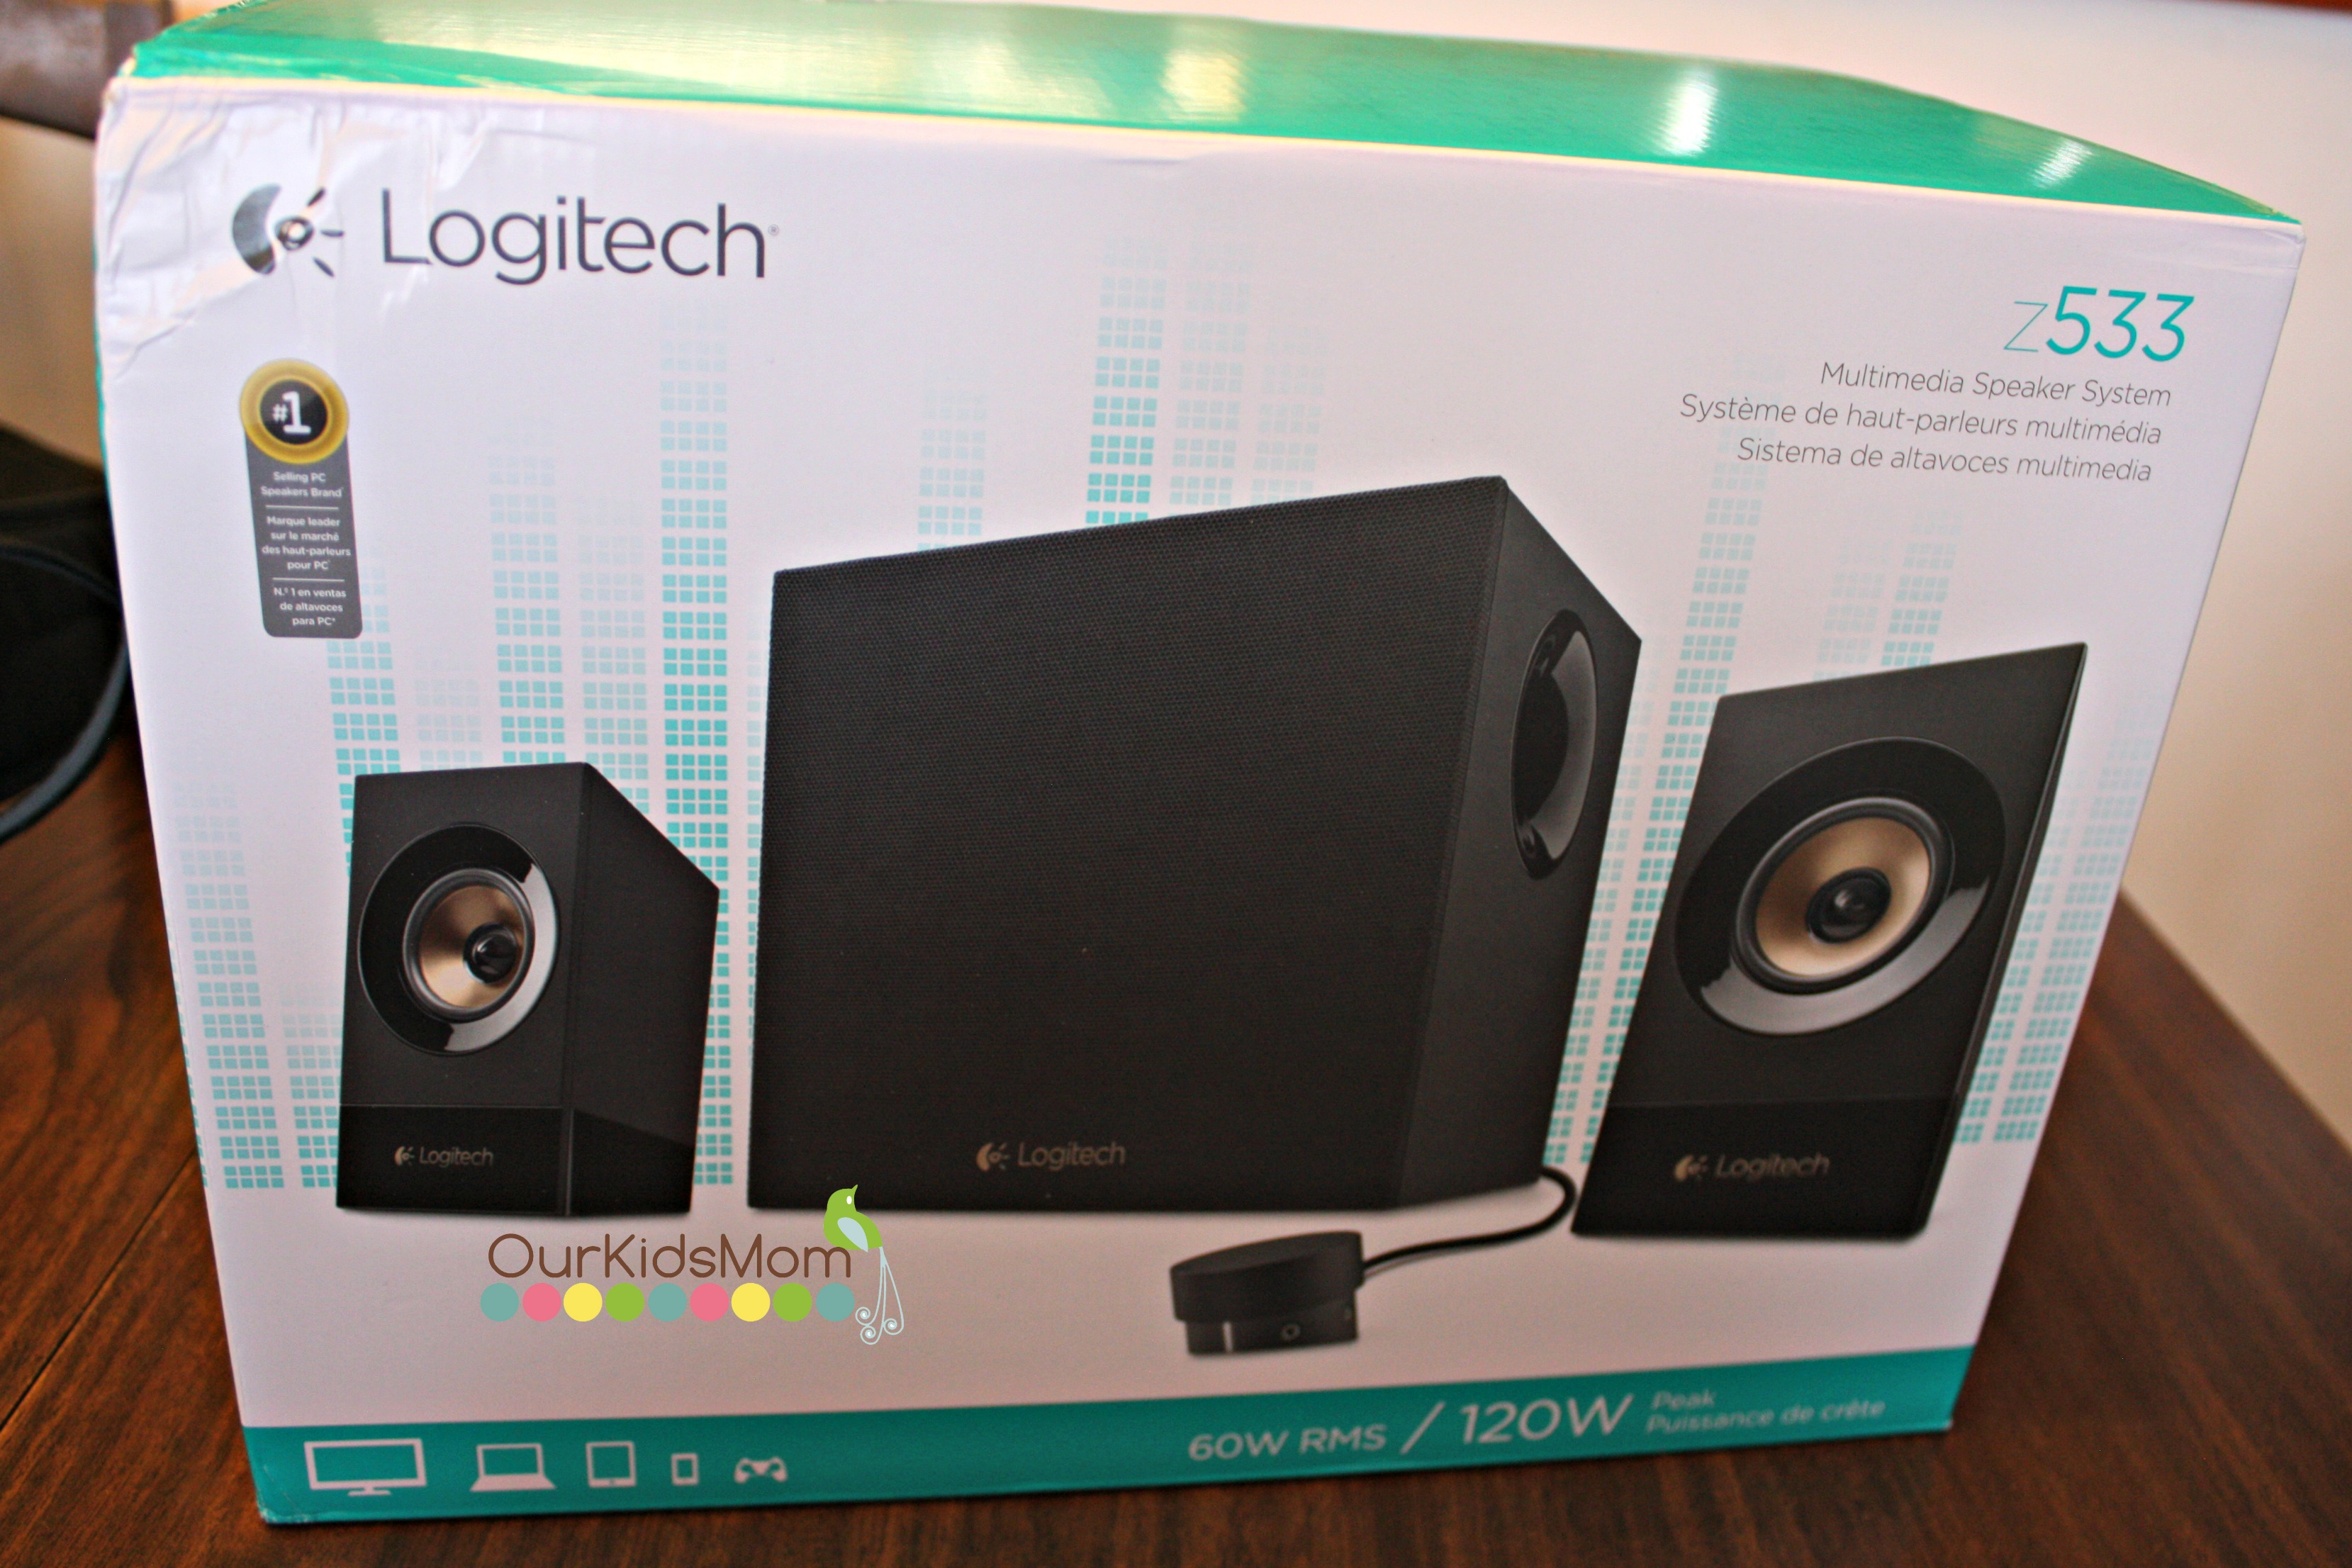 Speaker System in the box